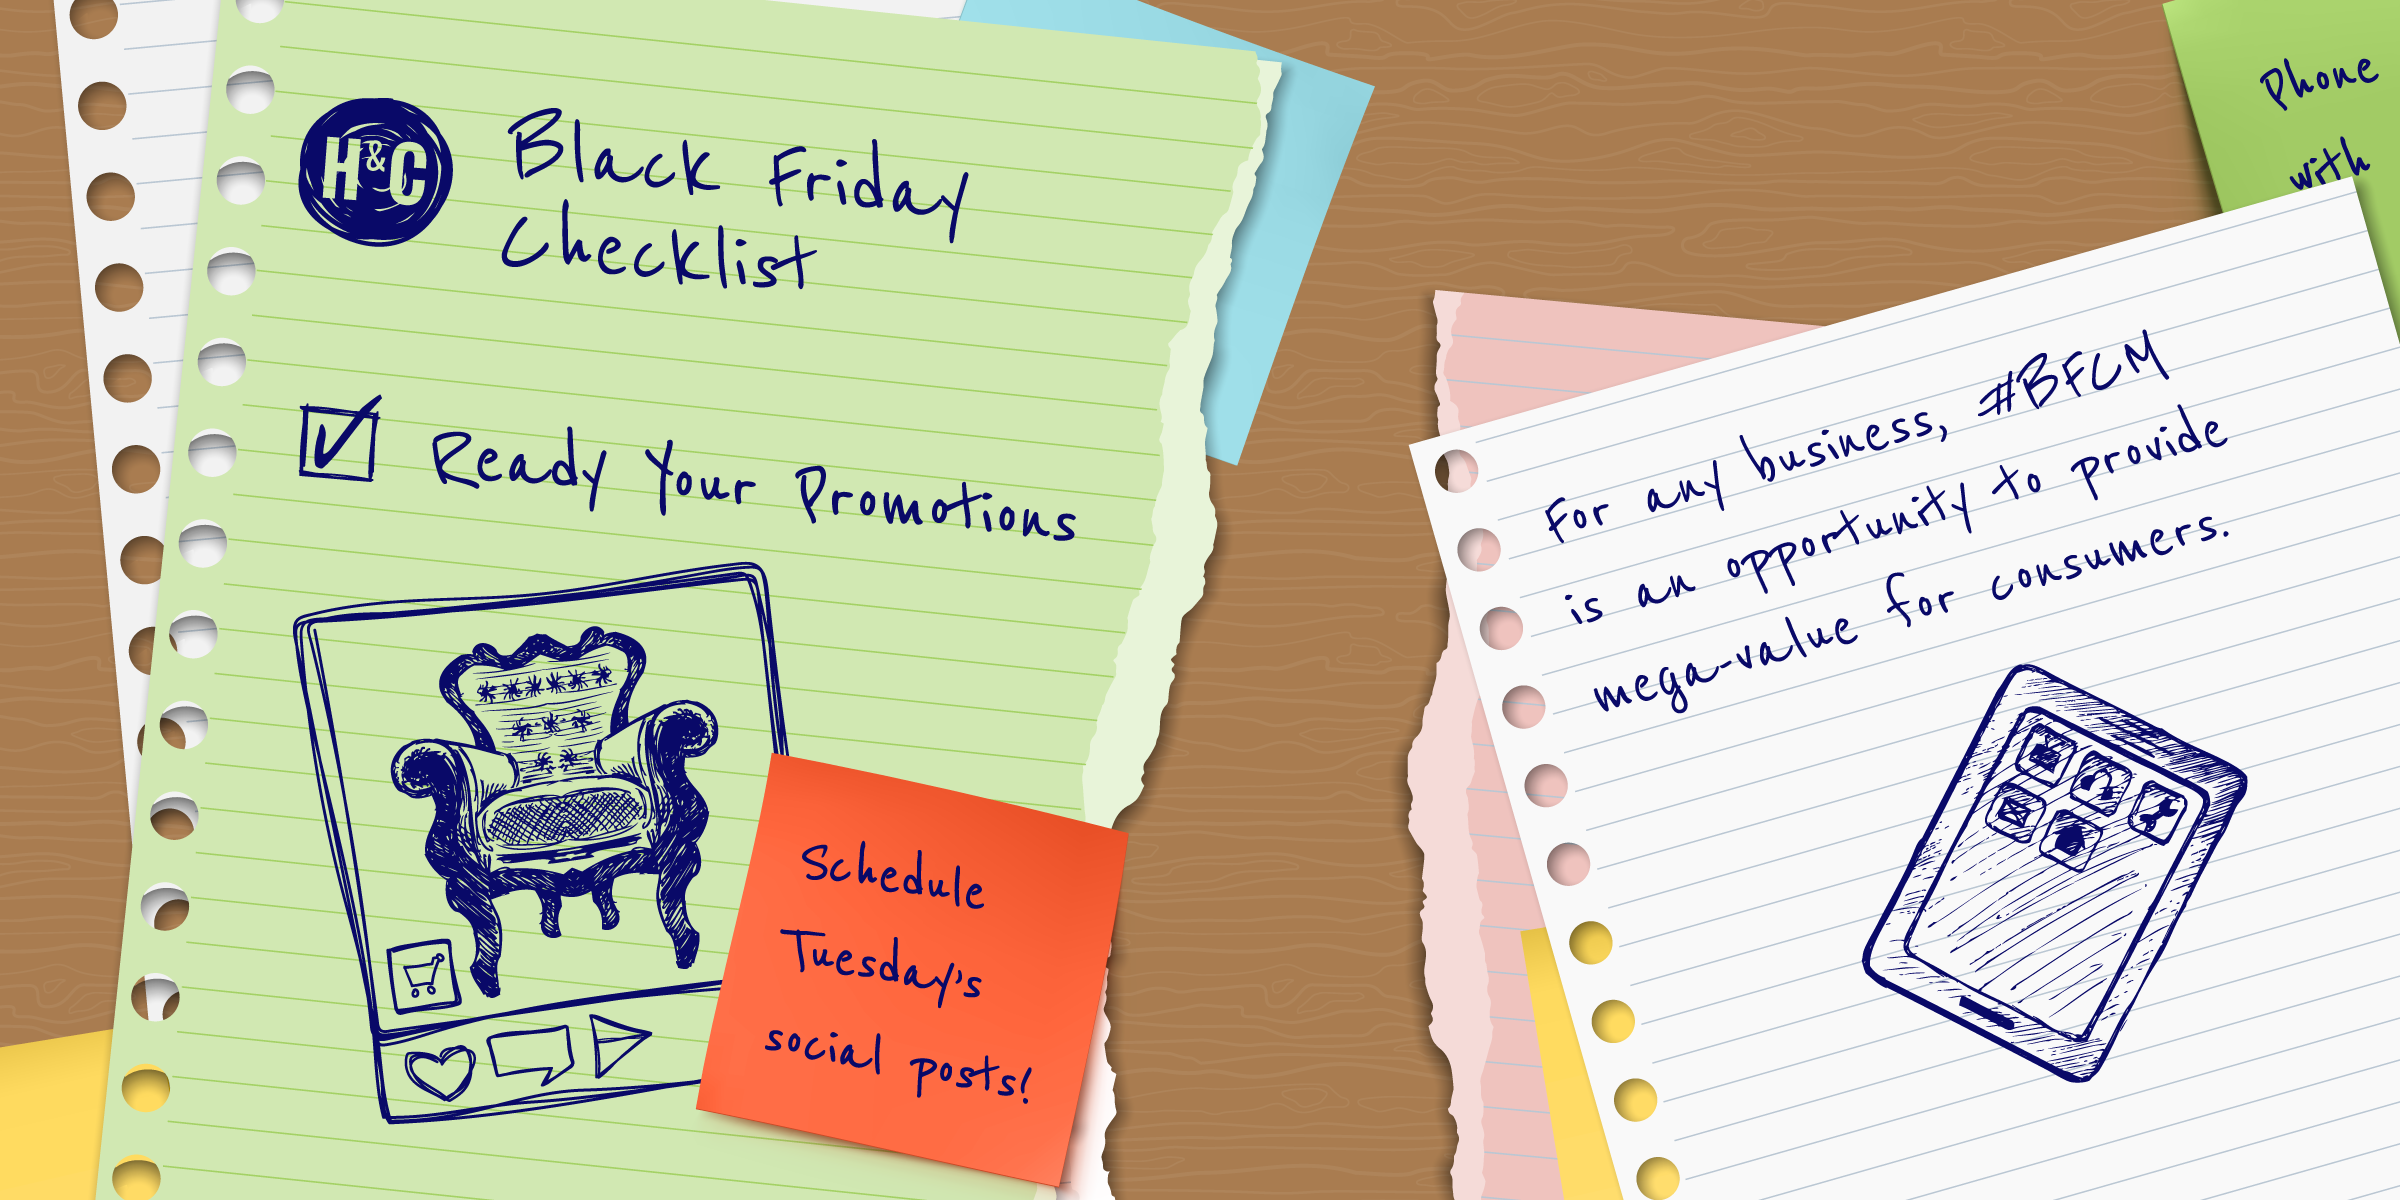 H&C Black Friday Checklist: Ready Your Promotions